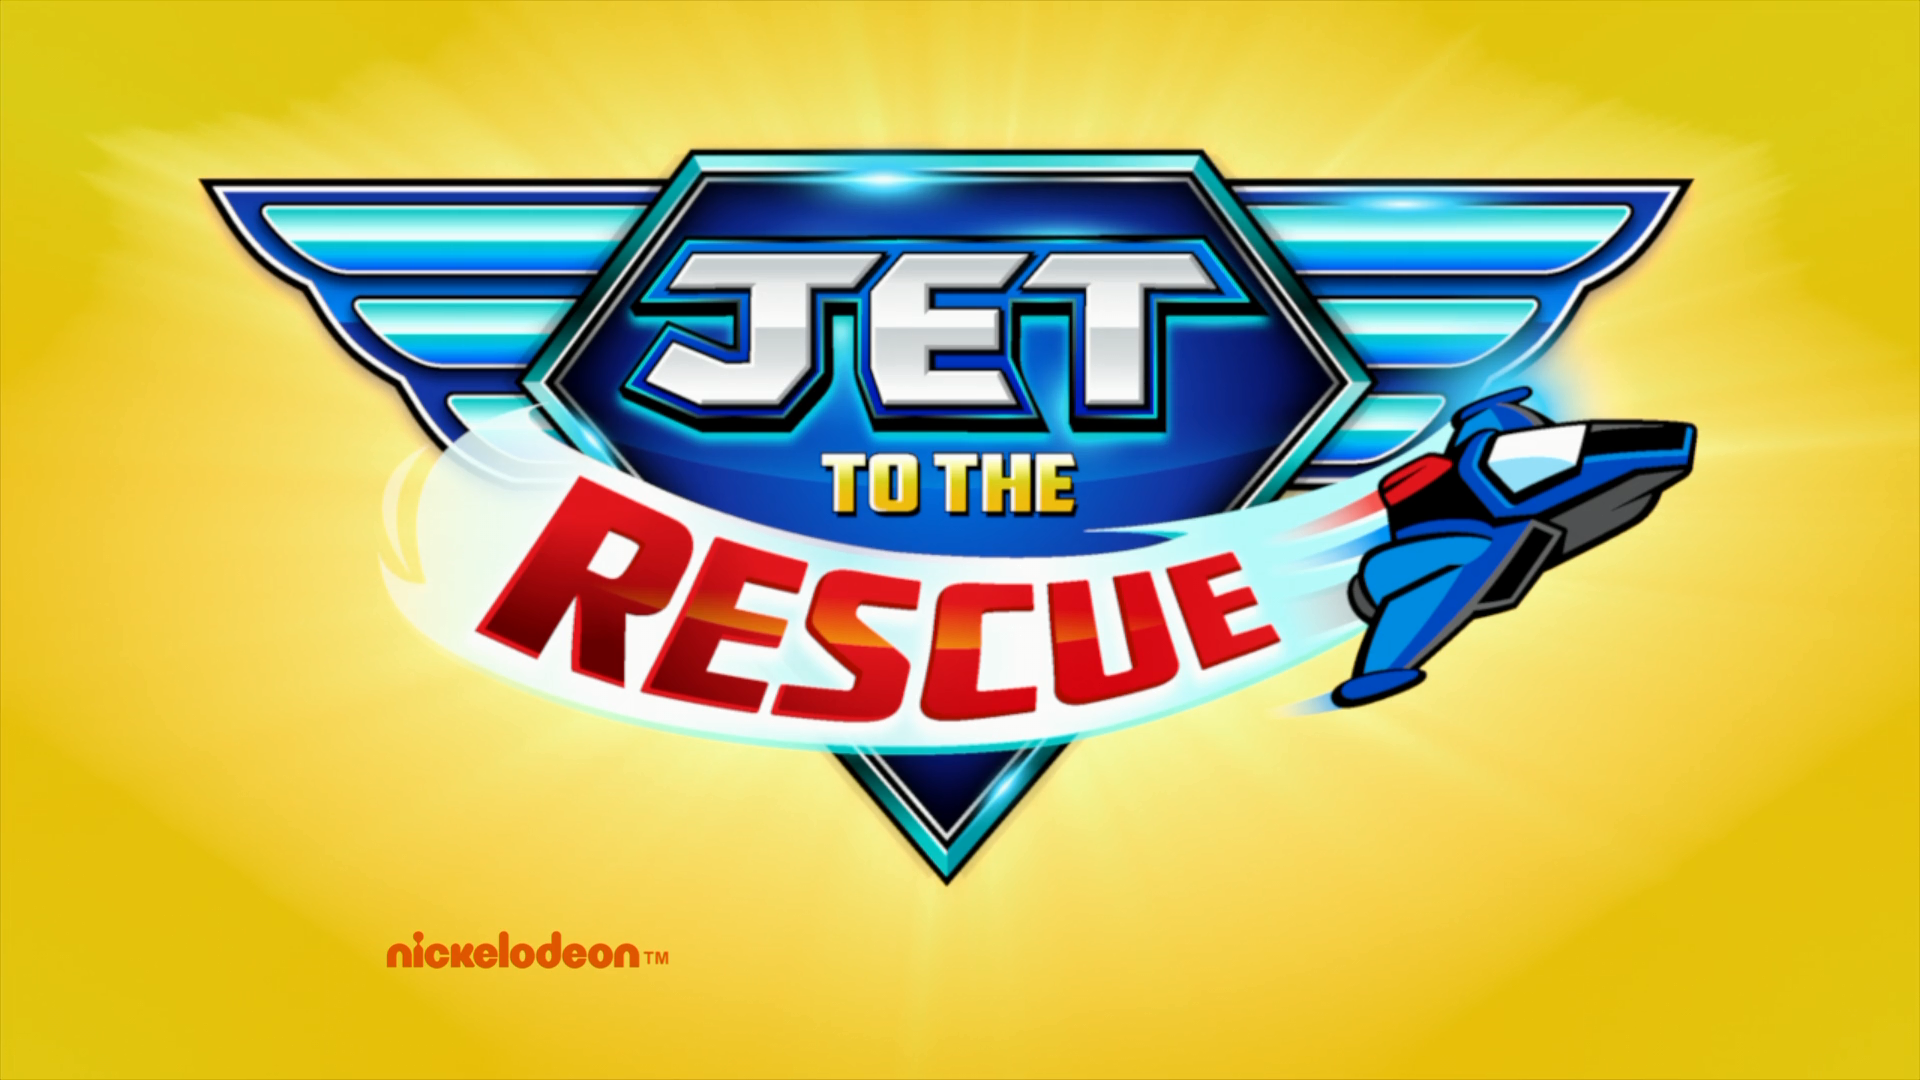 Jet to the Rescue